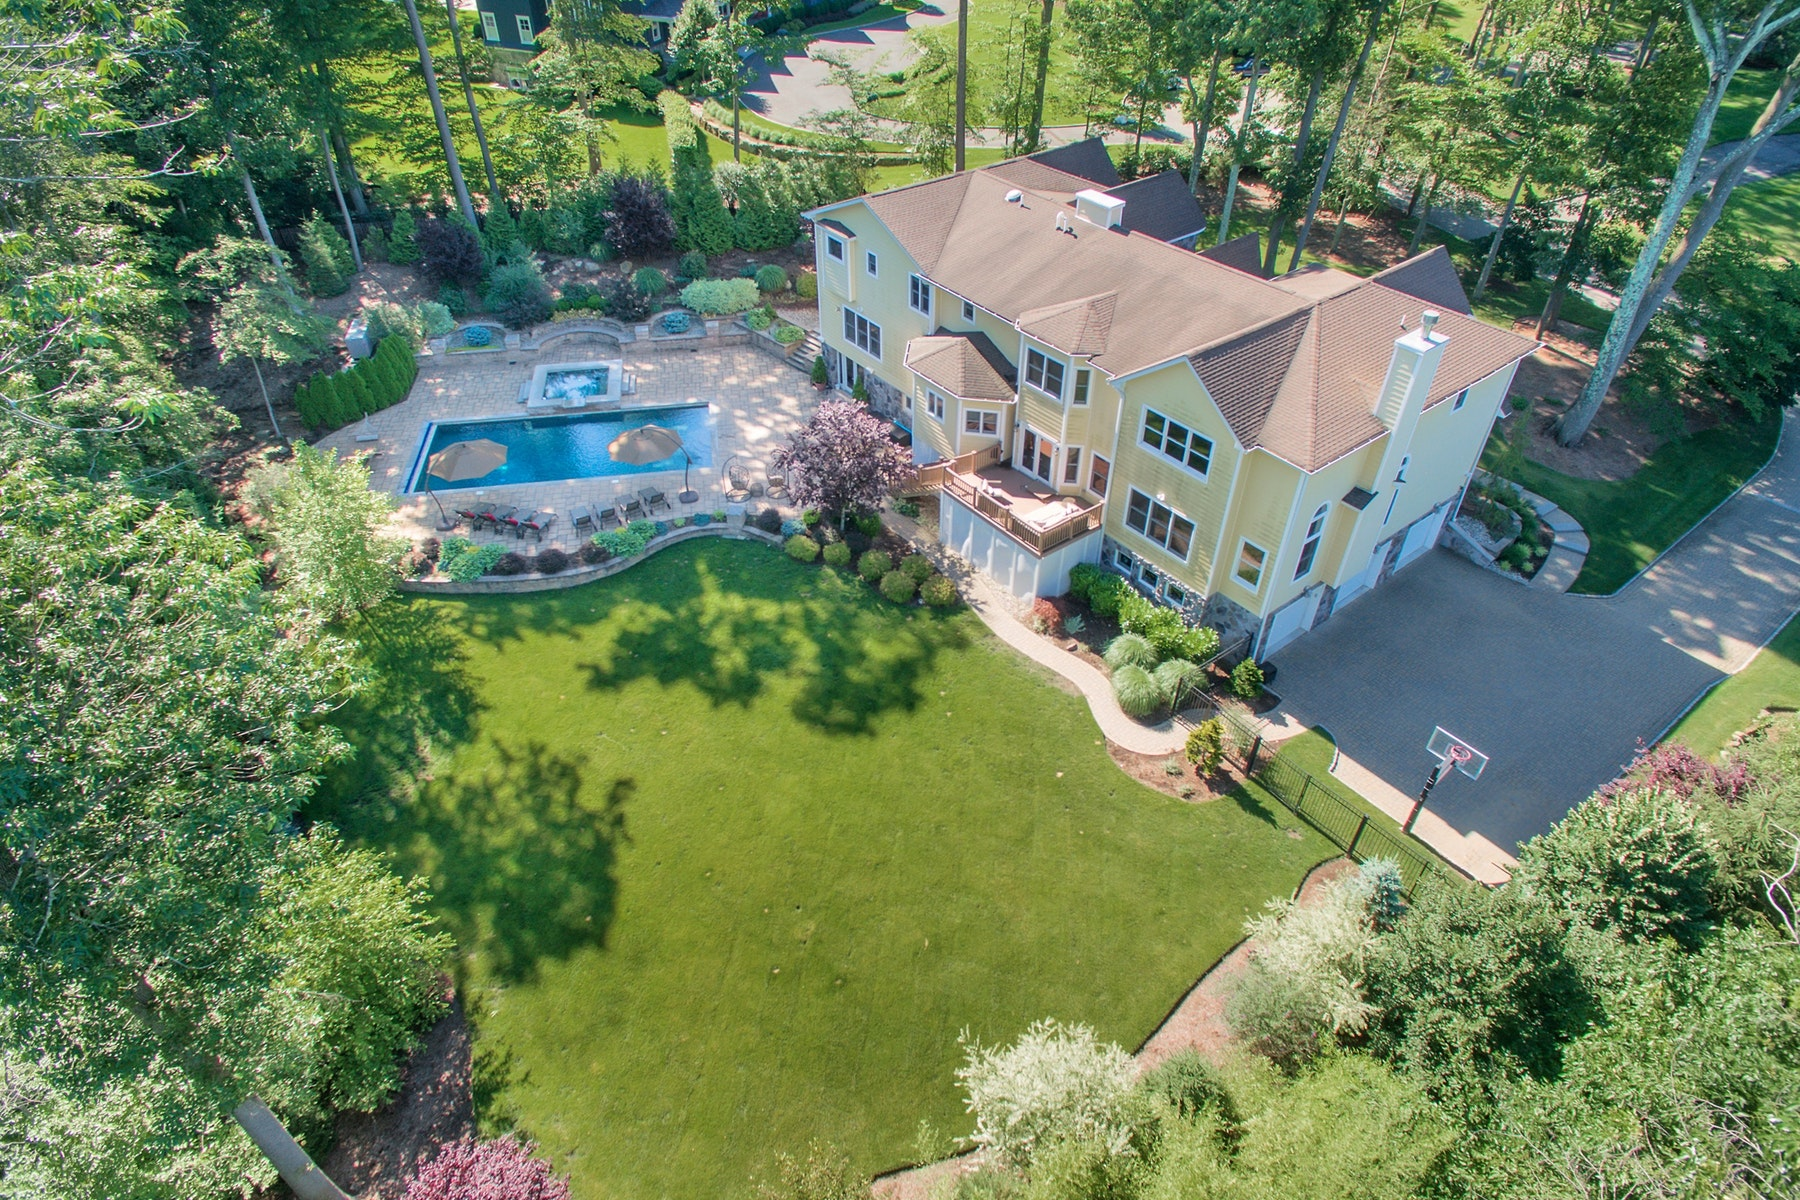 Single Family Home for Sale at Custom Built Home 1+Acre 43 Dogwood Hill Rd, Upper Saddle River, New Jersey 07458 United States